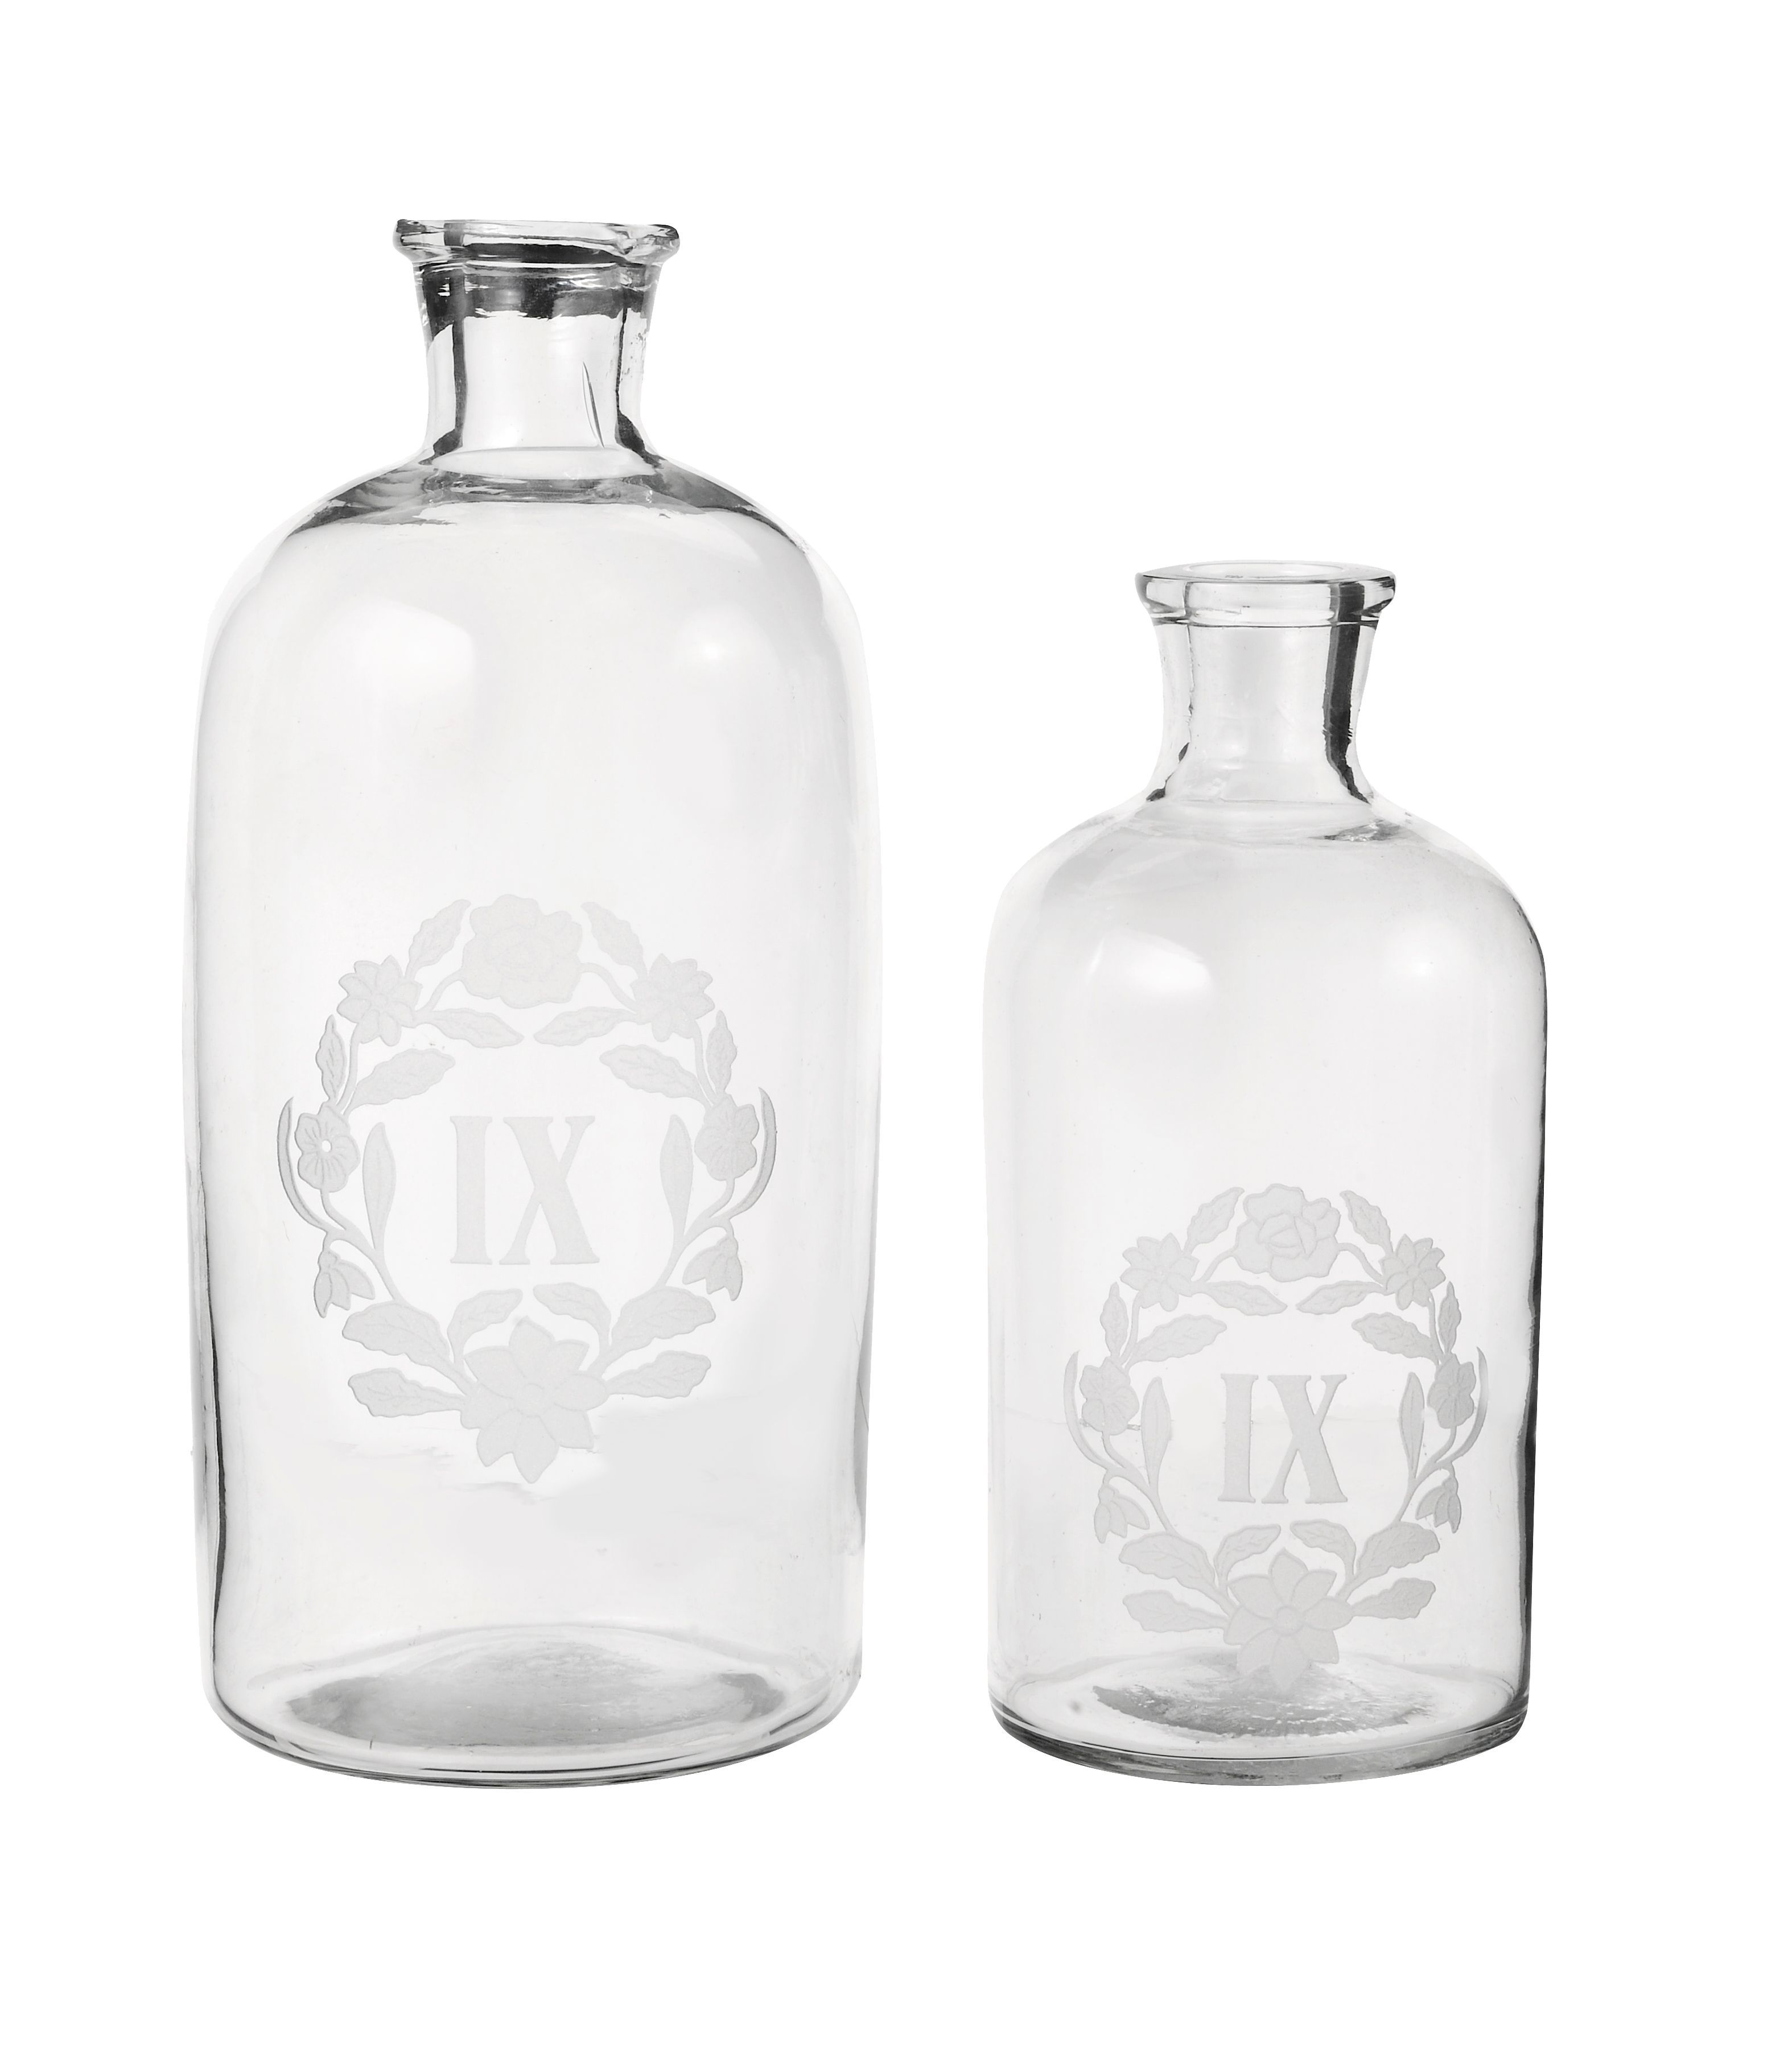 Small decorative glass bottle